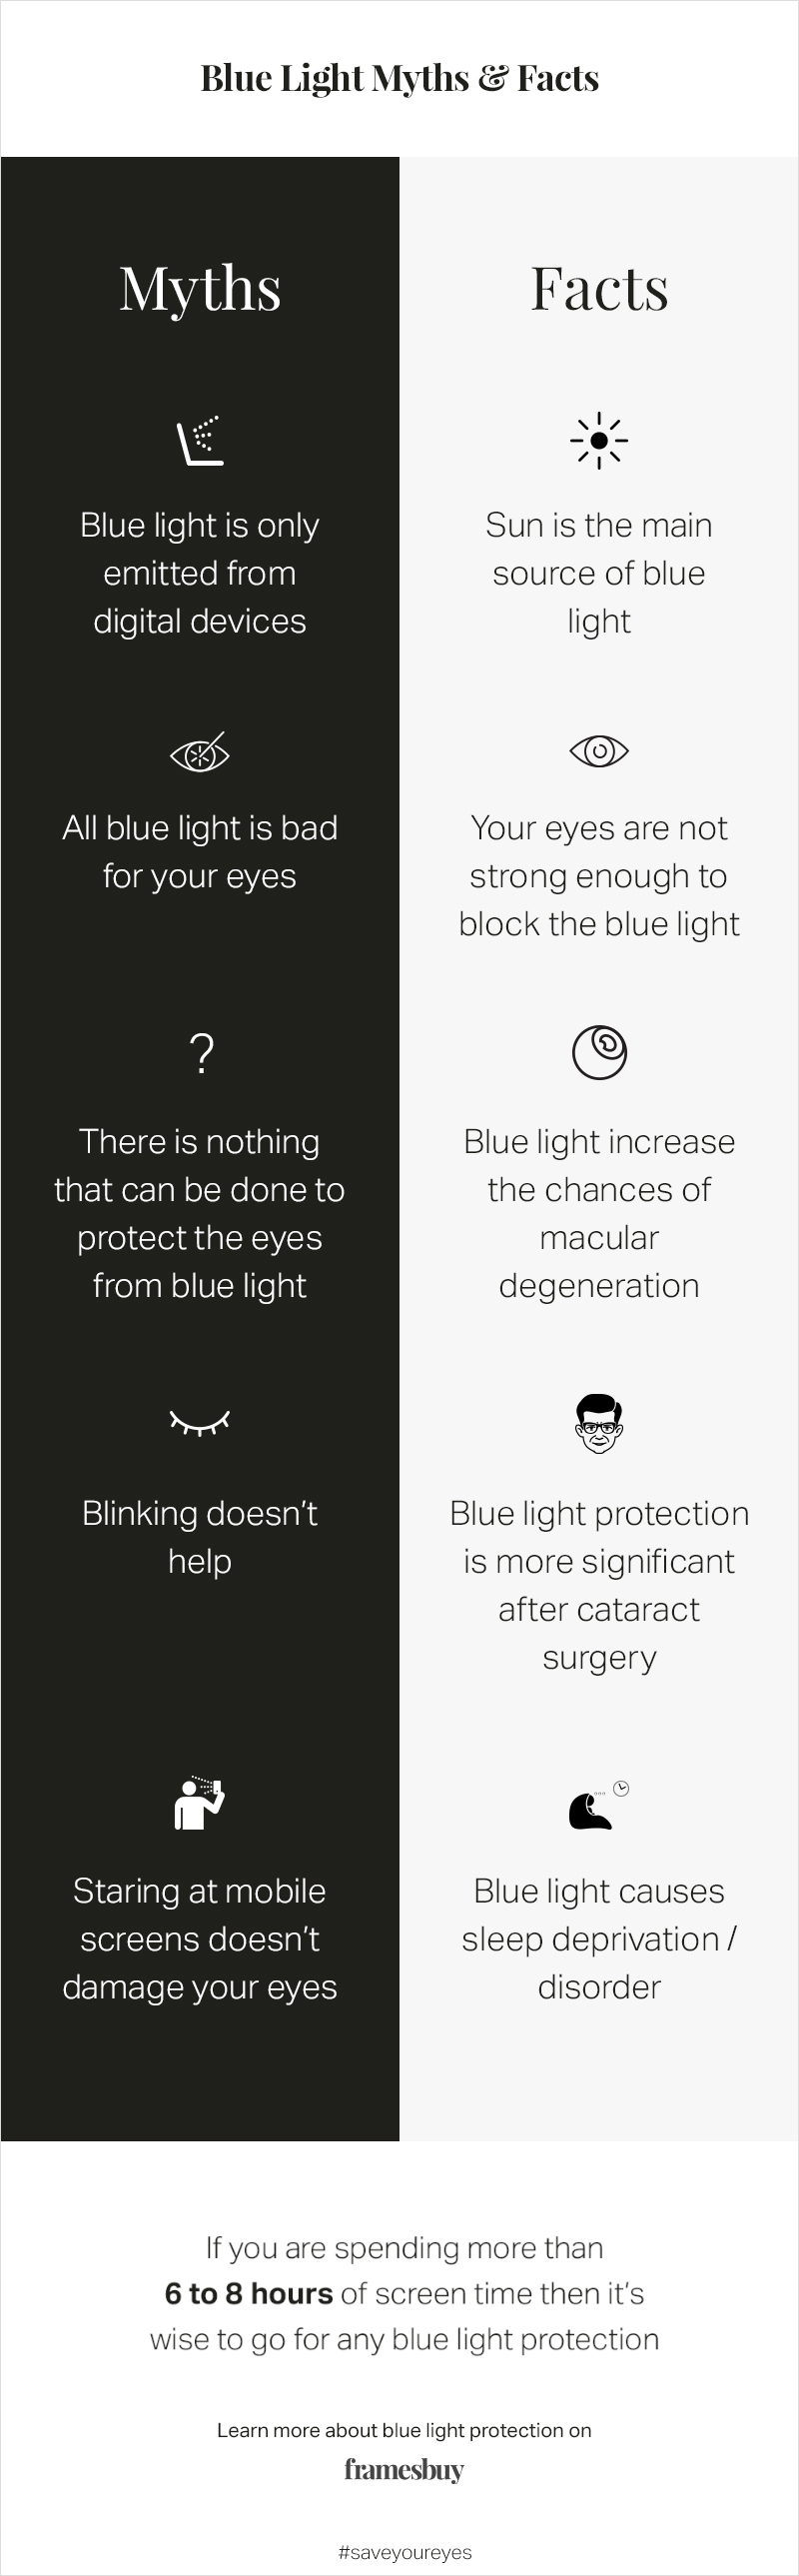 blue-block-mythsfacts